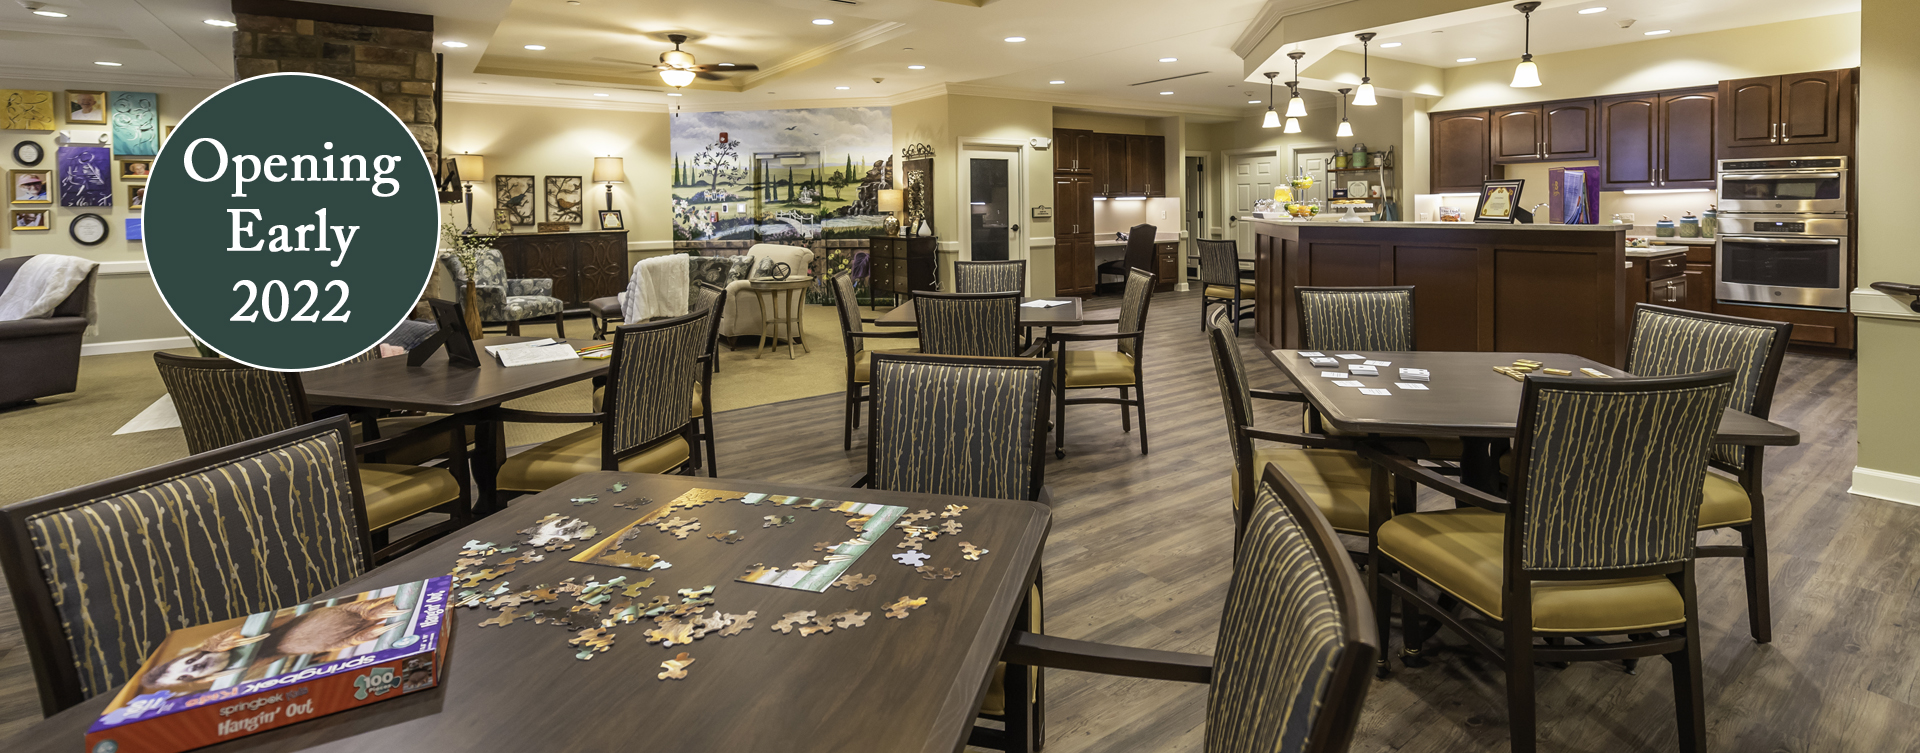 Mary B's country kitchen evokes a sense of home and reconnects residents to past life skills at Bickford of Chesapeake